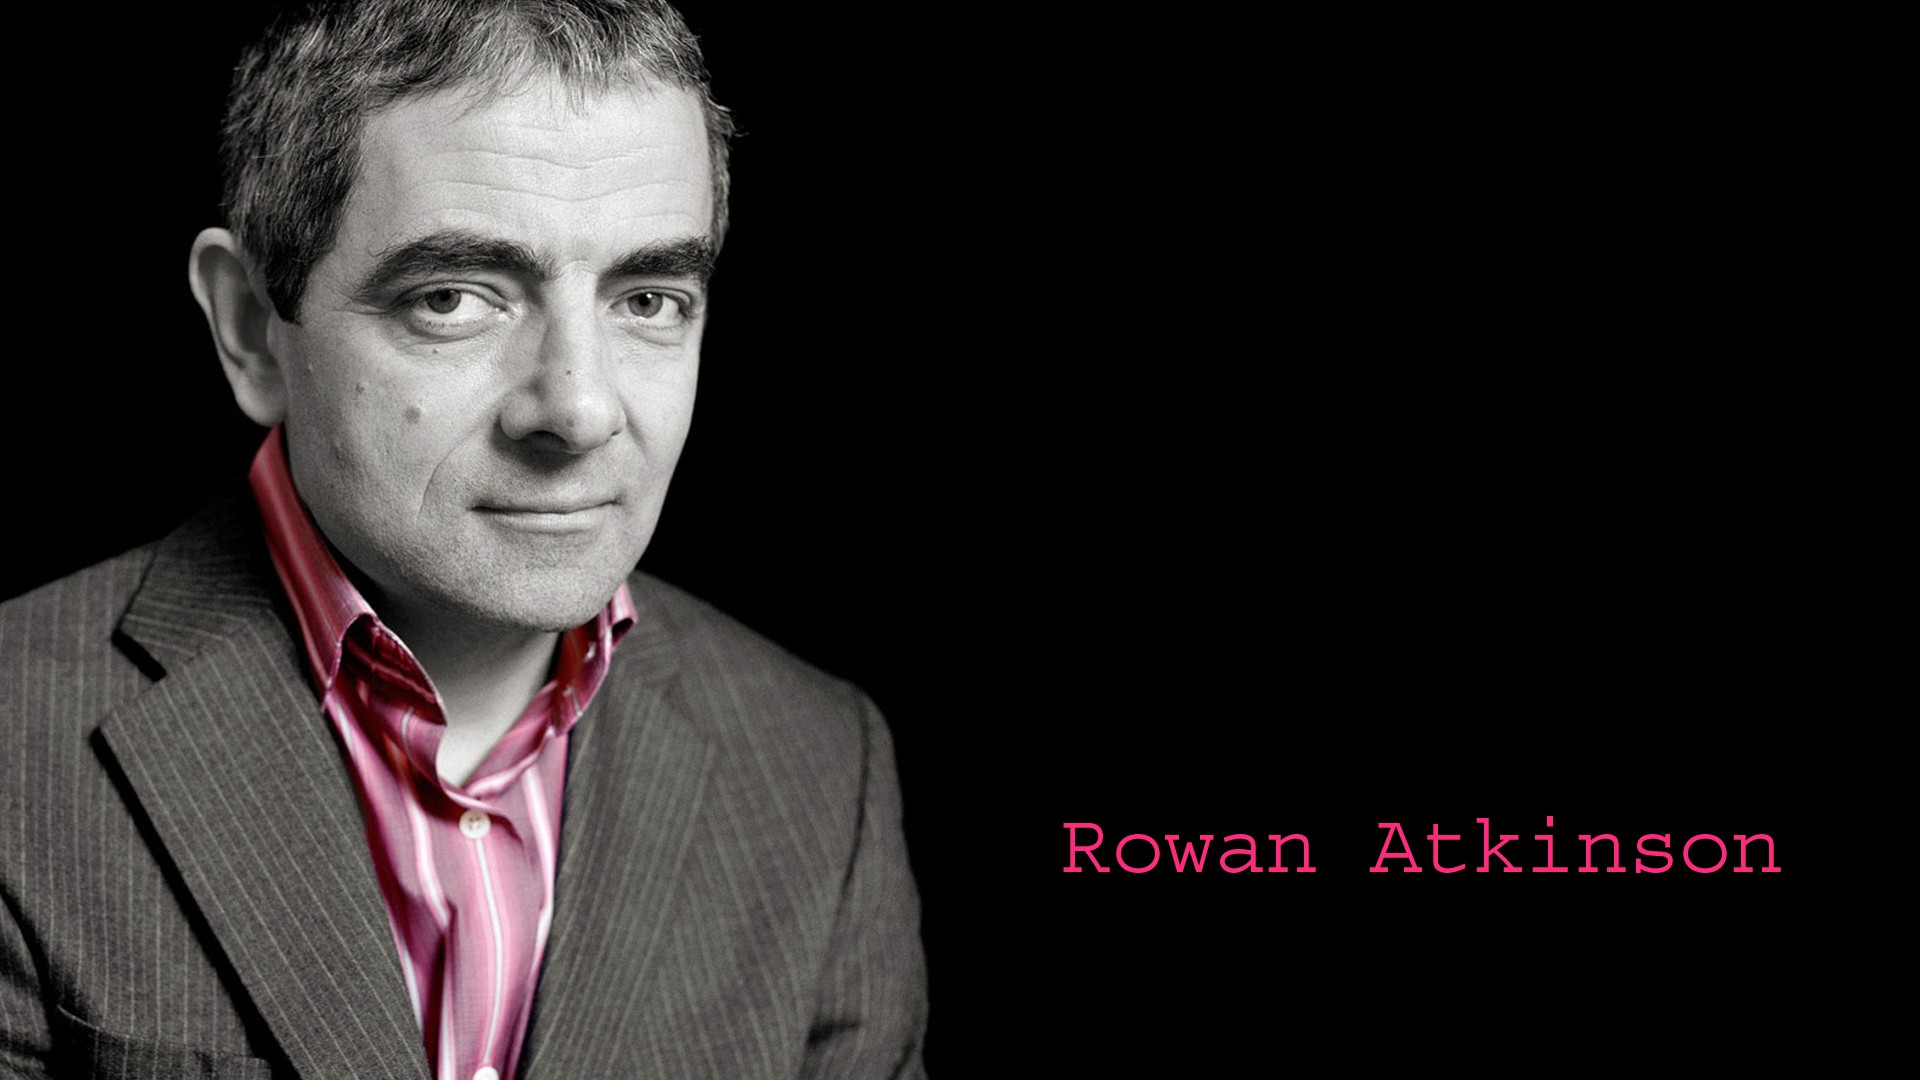 Rowan-Atkinson-Recent-Picture